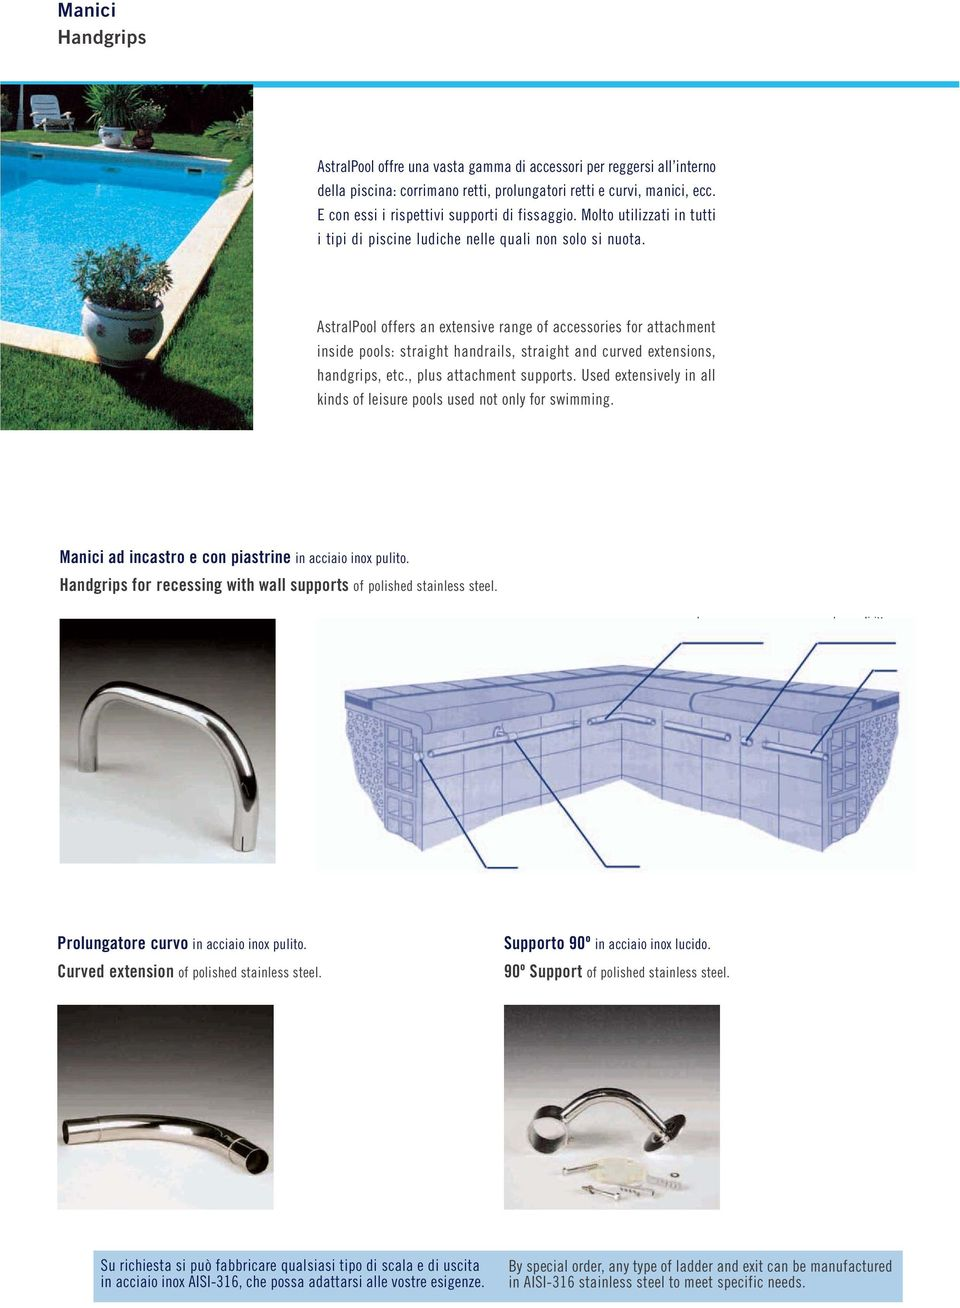 . AstralPool offers an extensive range of accessories for attachment inside pools: straight handrails, straight and curved extensions, handgrips, etc., plus attachment supports.